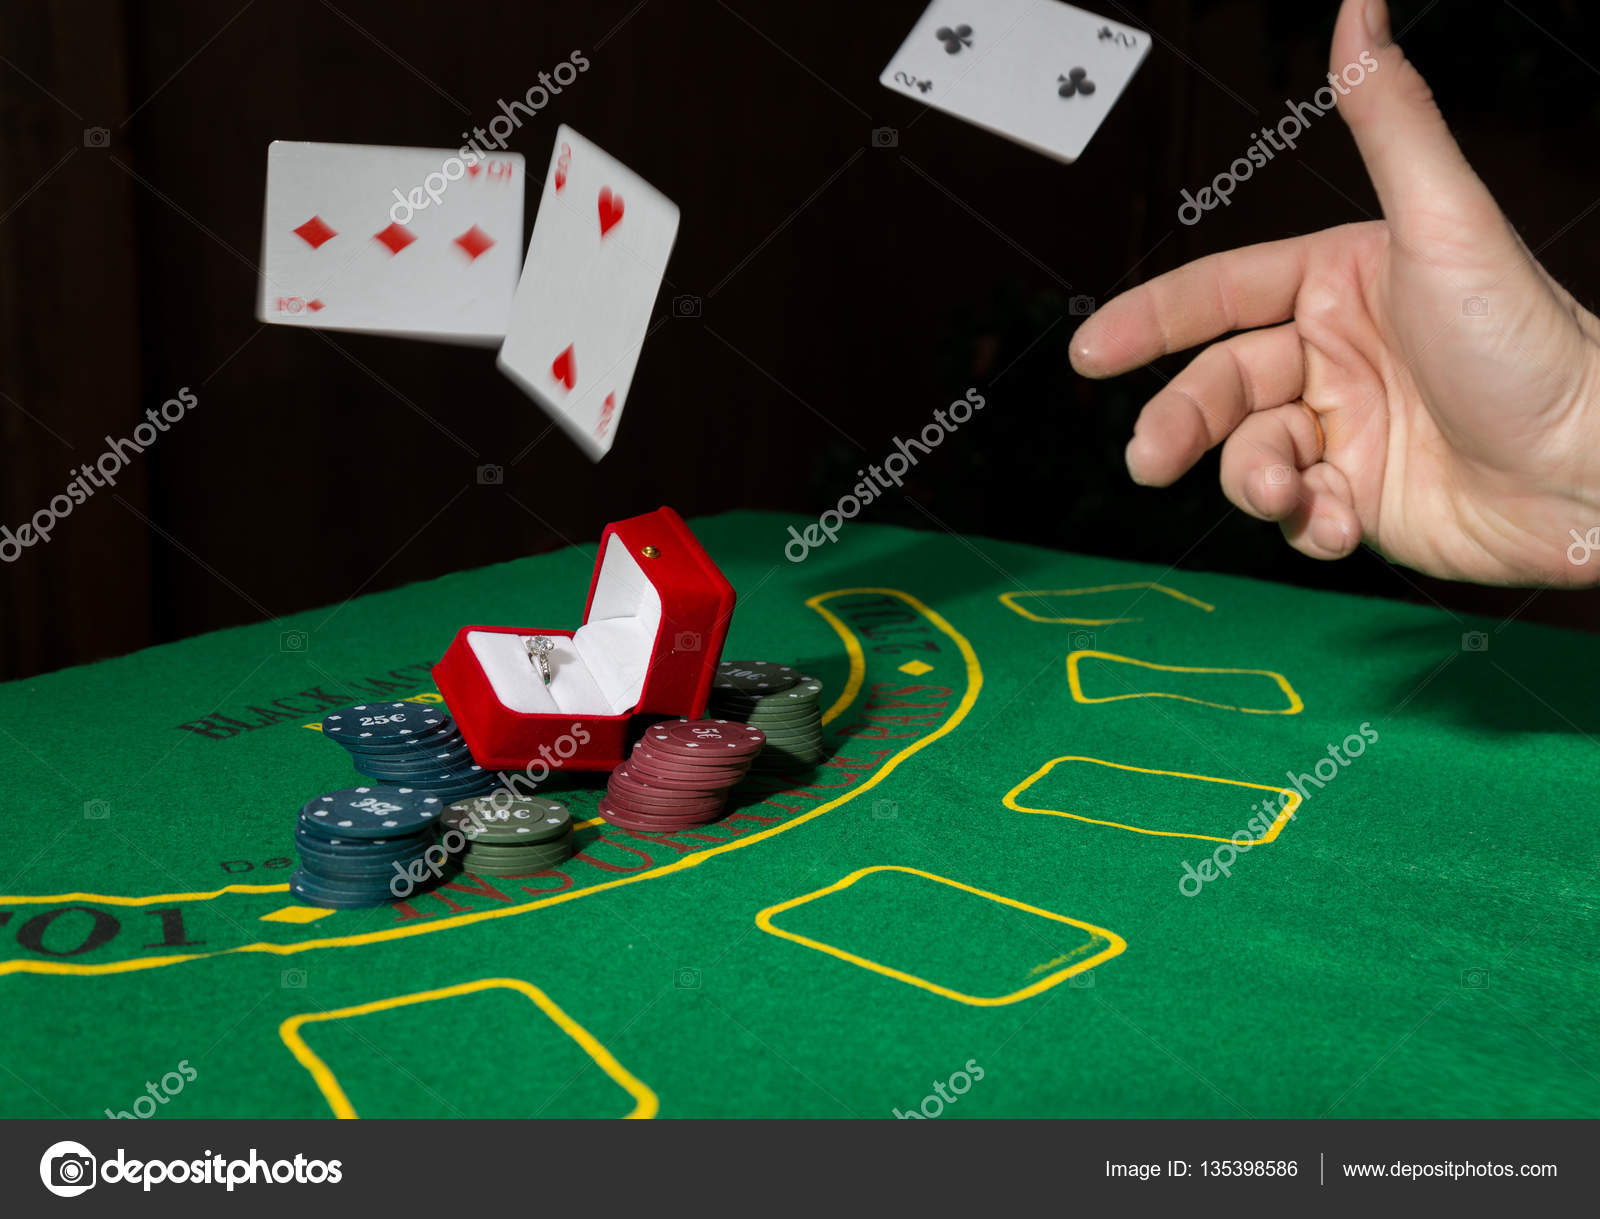 Poker table background - Casino Chips And A Precious Ring On A Green Poker Table Background Man Throws Cards With Losing Combination Photo By Sandy Che Yandex Ru